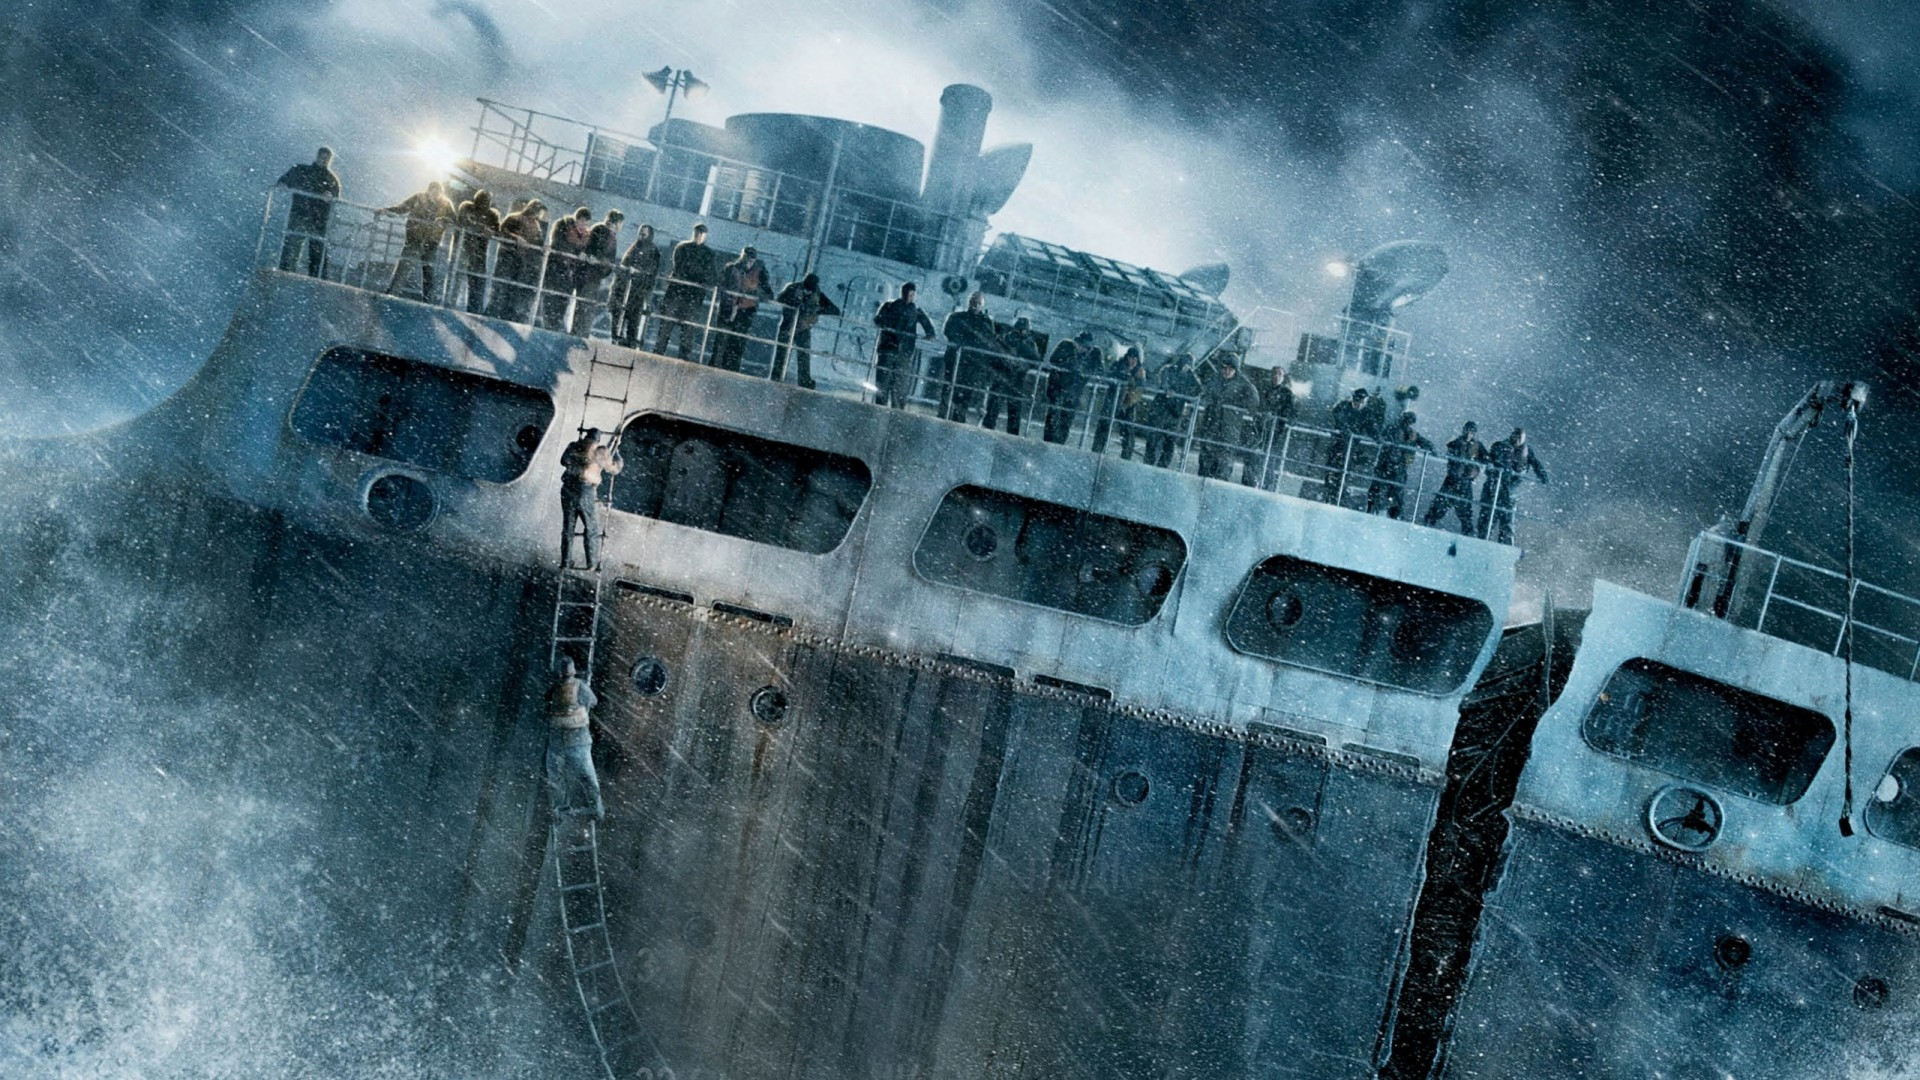 1920x1080 Preview wallpaper the finest hours, ship, wreck, storm